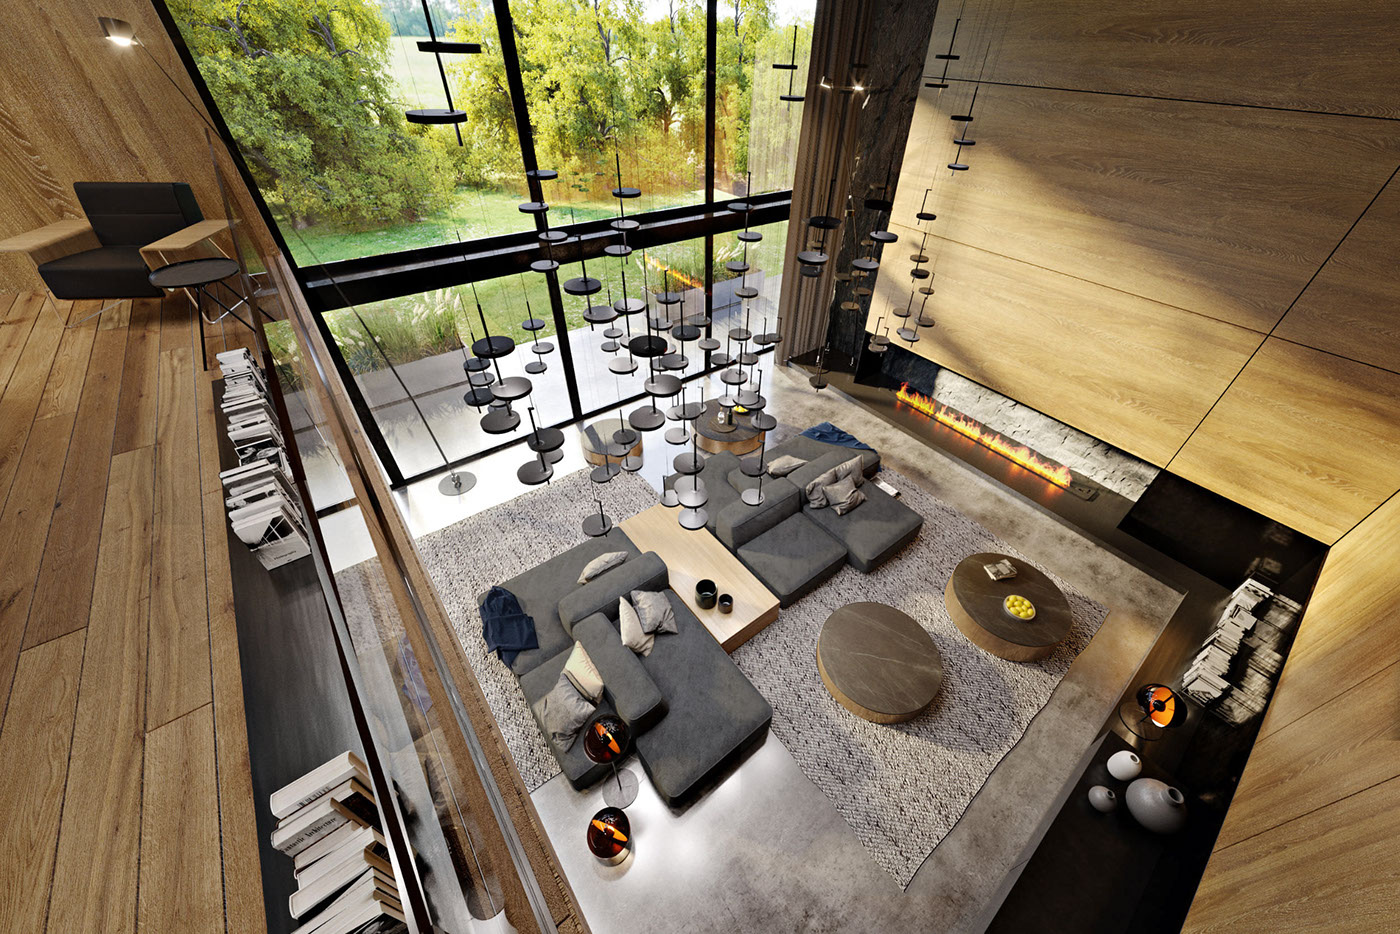 The gorgeous views and a double height ceiling create an impression of a vast space and connection to outdoors